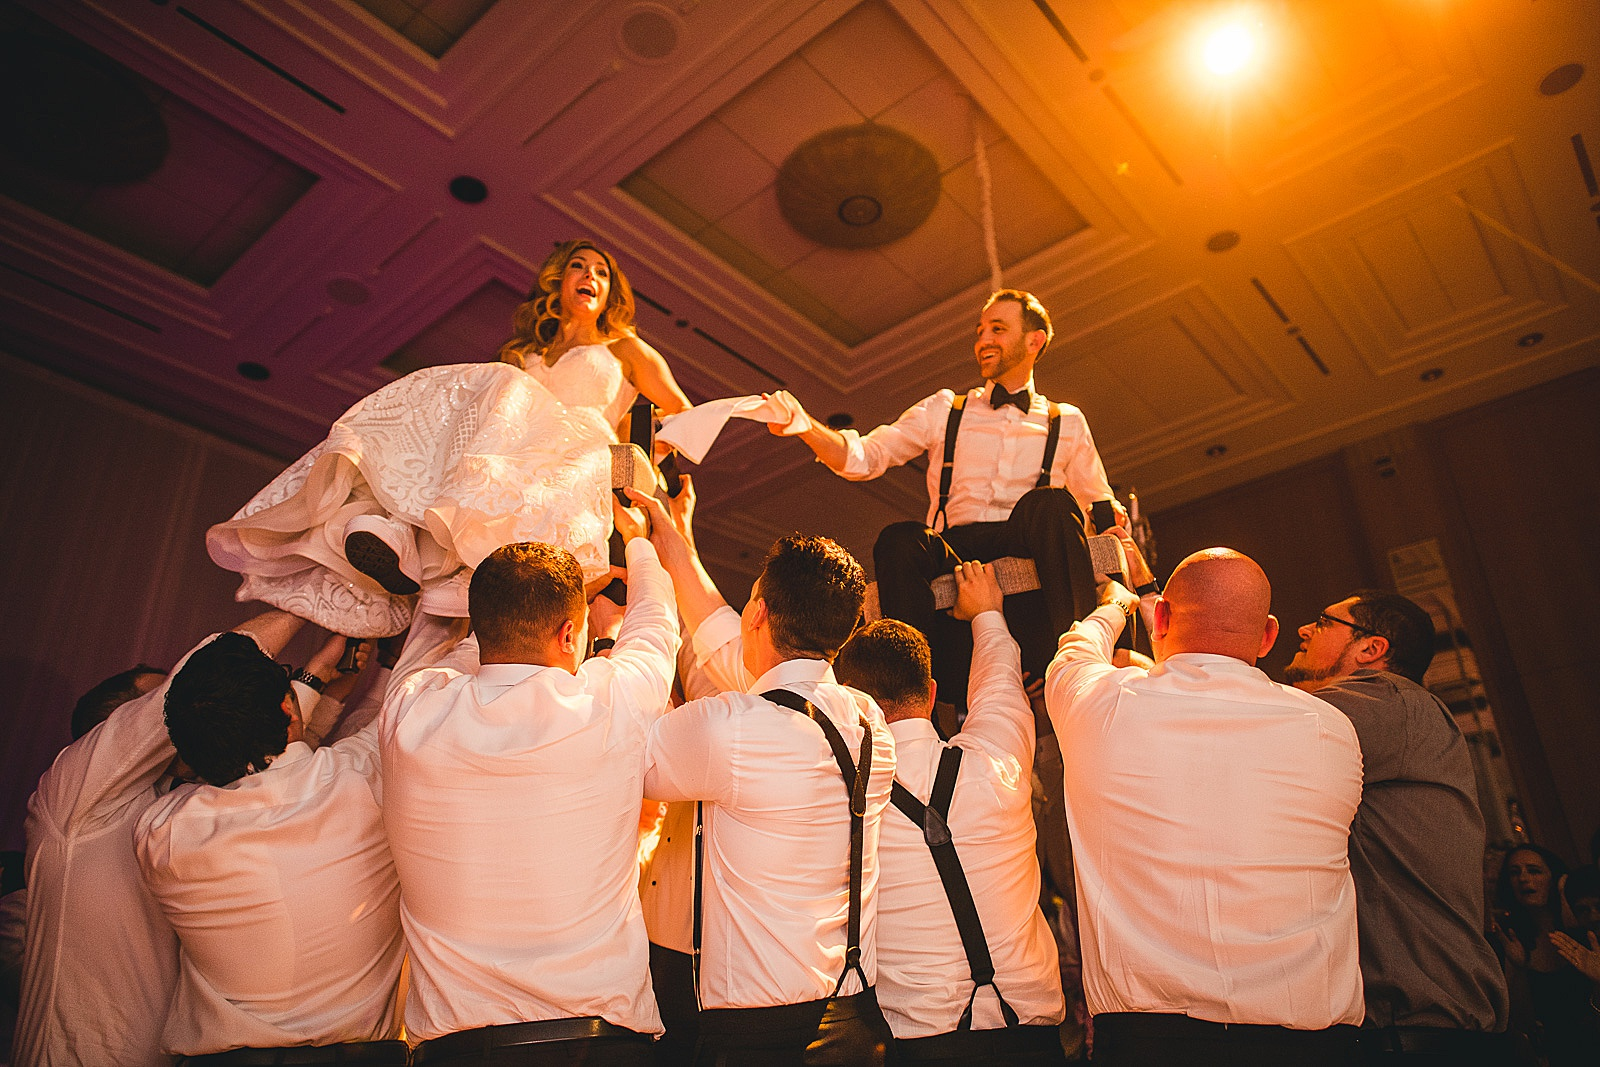 71 incredible hora wedding photos in chicago - Susie + Eric's Jewish Wedding at the Peninsula Hotel in Chicago